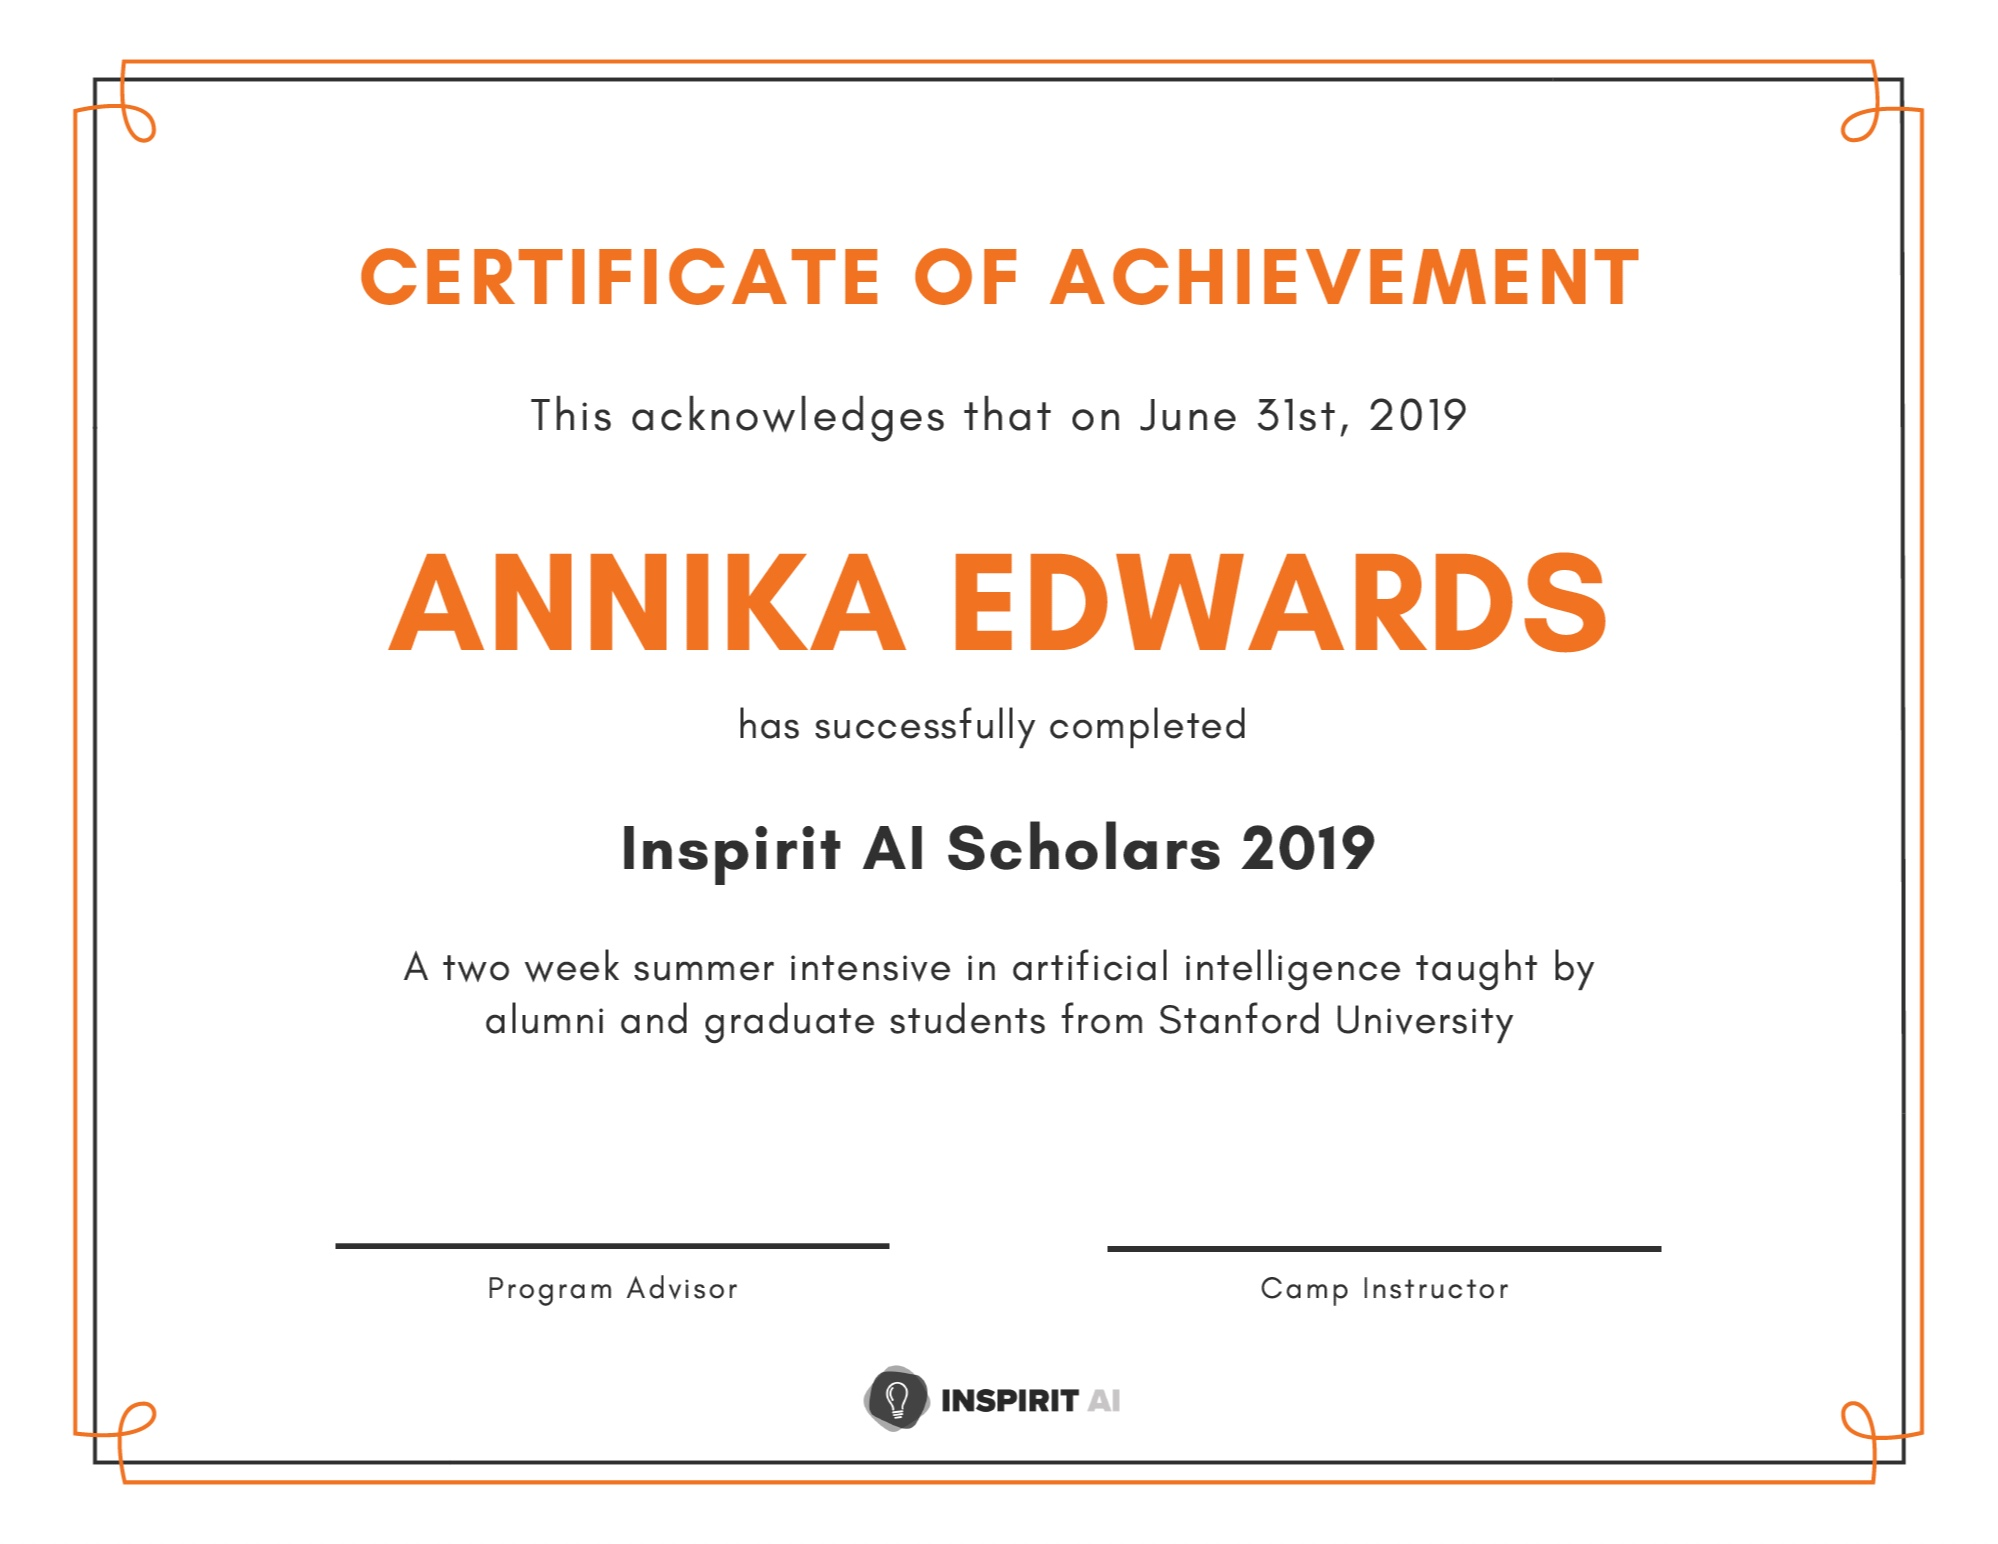 Certificate of Achievement - At the end of the program, students receive their Certificate of Achievement for successfully completing AI Scholars 2019!